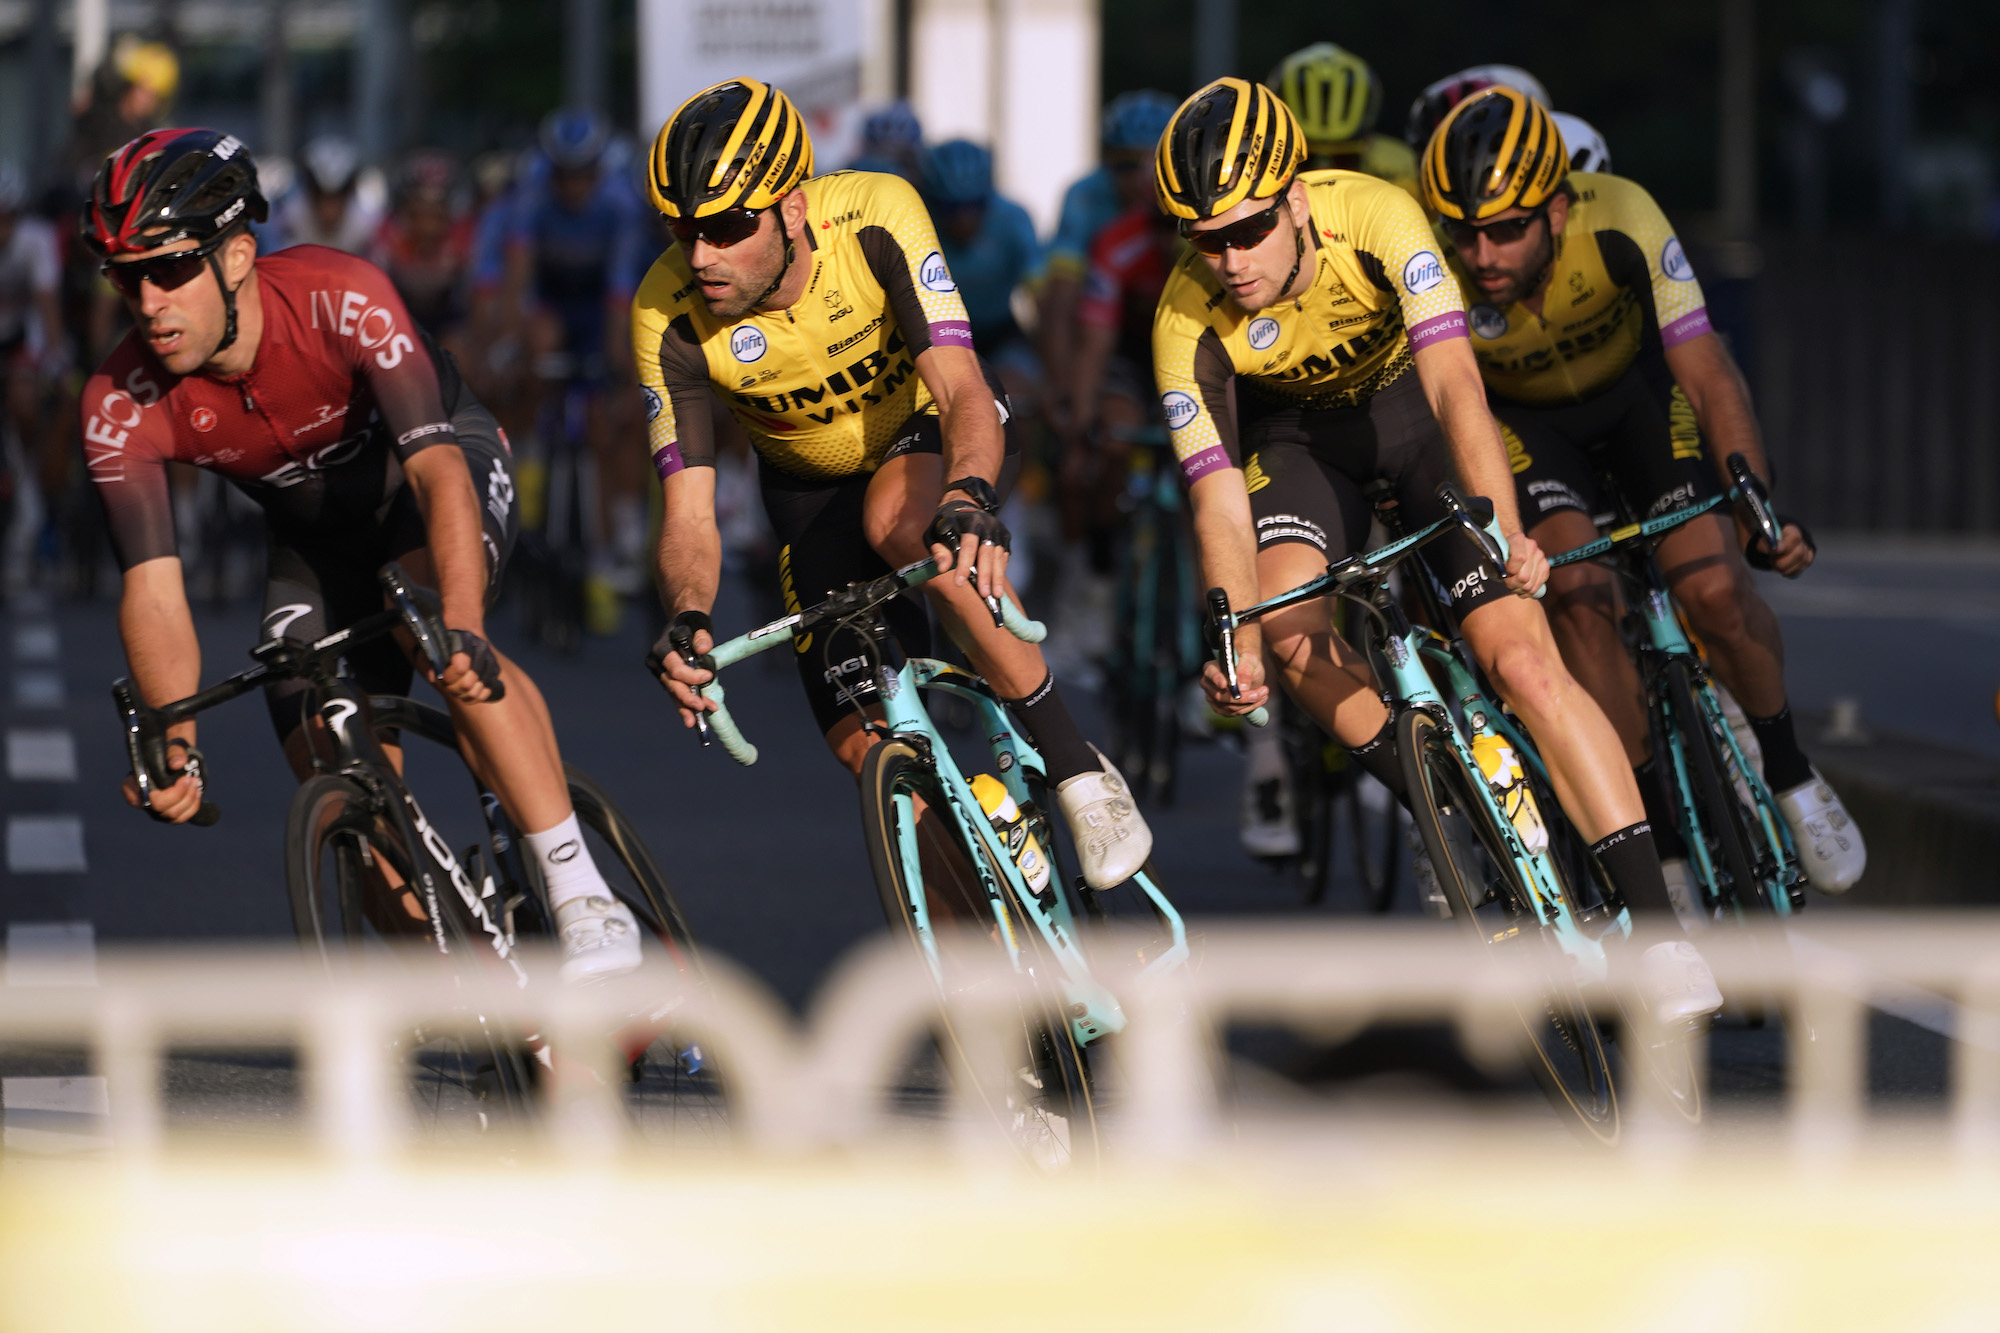 Other teams are bridging the gap to Ineos, says Jonathan Castroviejo